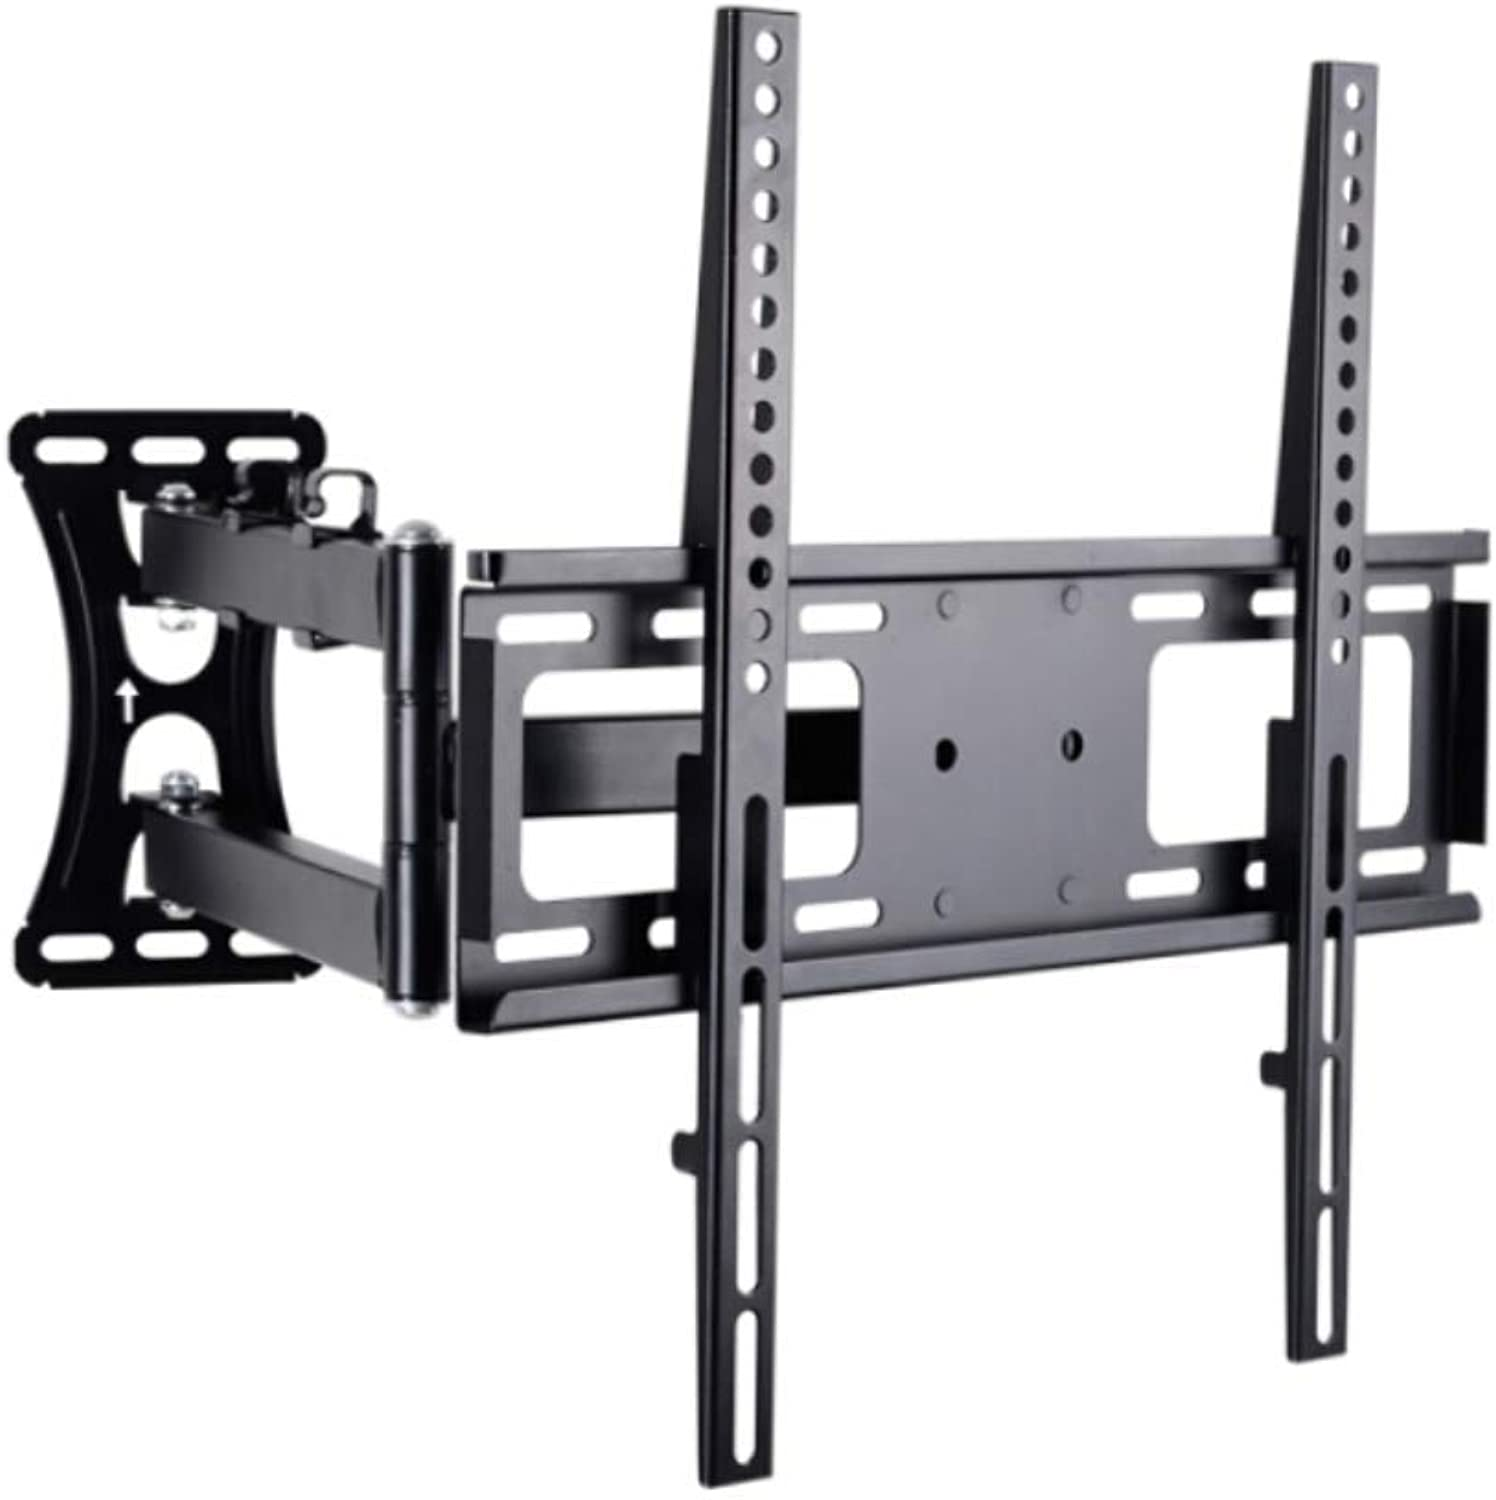 32-49 Inch TV Wall Bracket Tilt & Swivel LCD TV Rack Super Strong 30kg Weight Capacity Mount